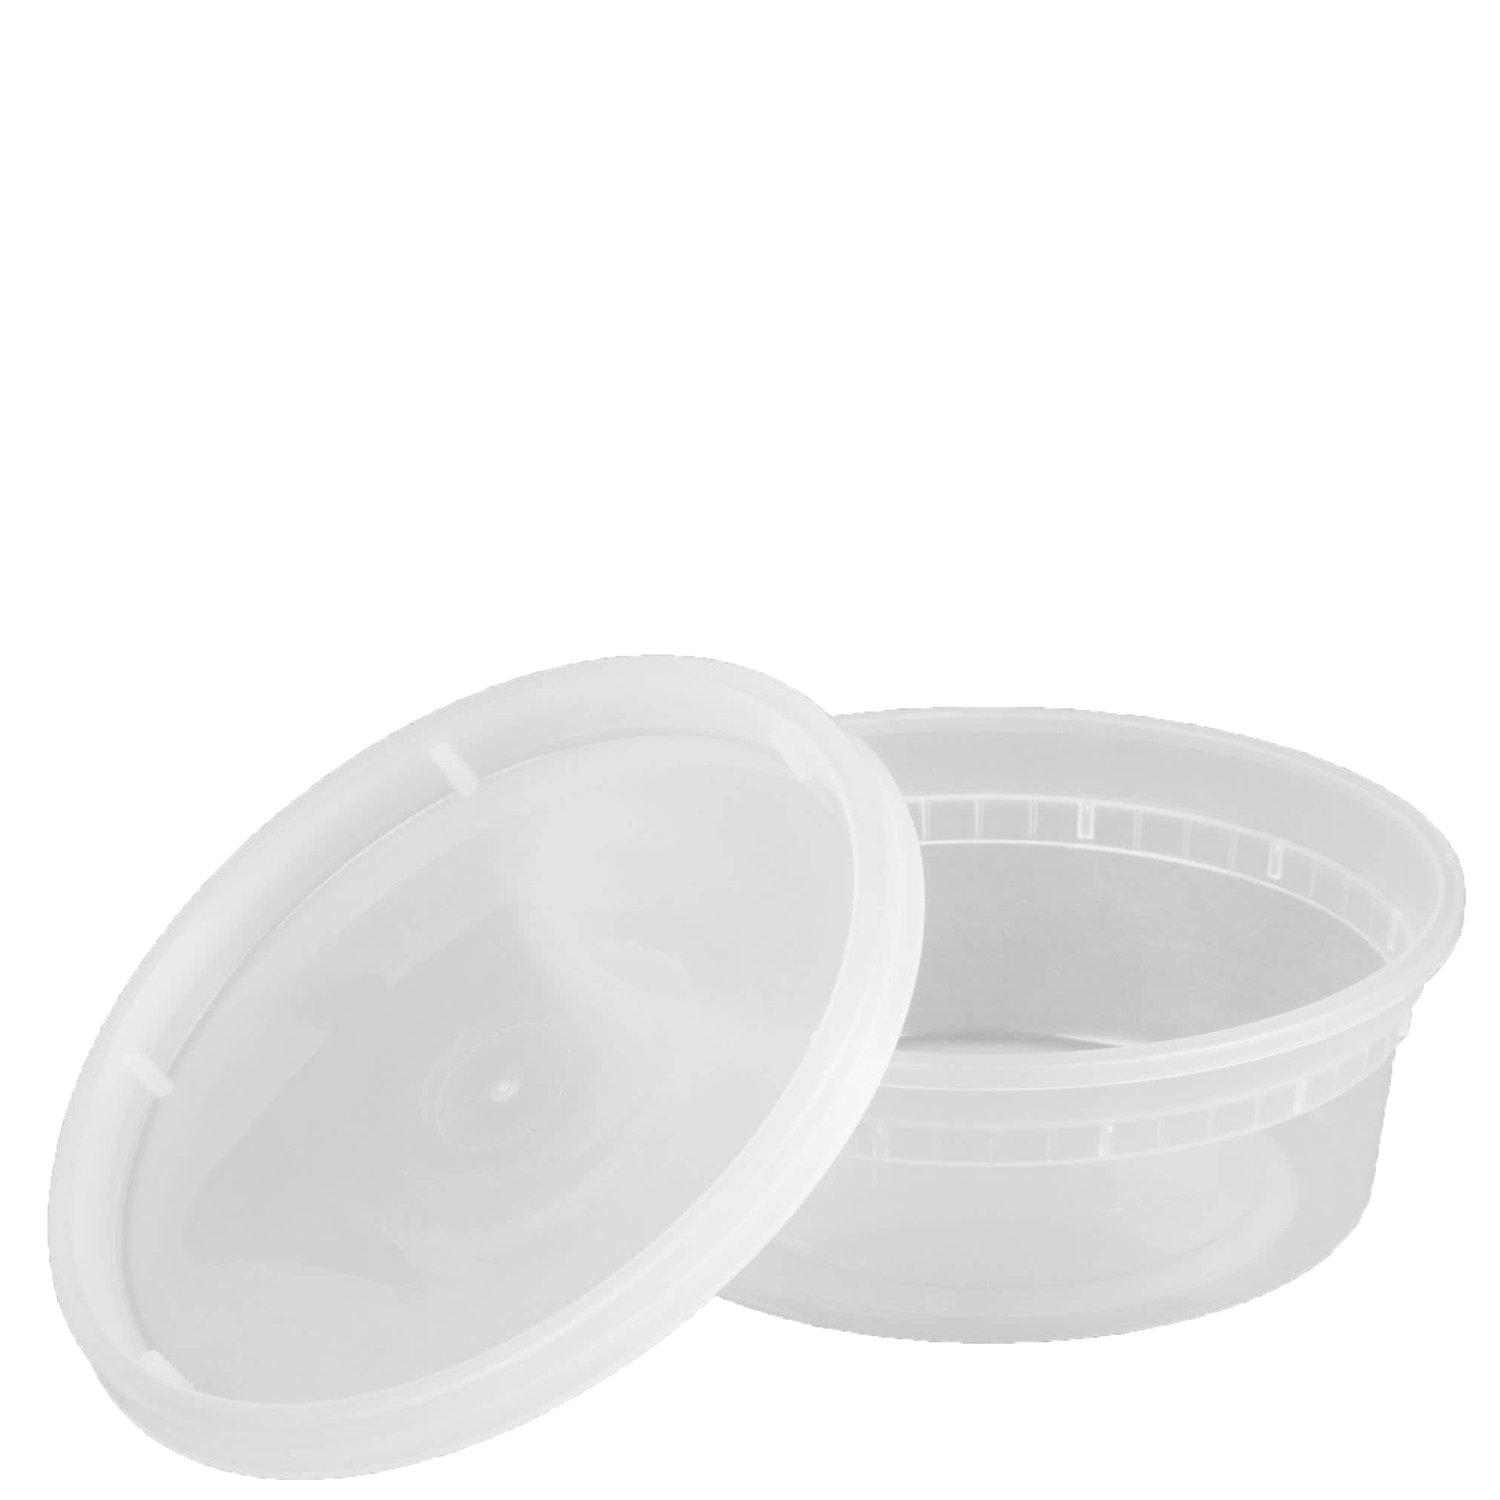 Plastic Deli Food Storage Containers with Airtight Lids (8 oz. - 48 Sets)